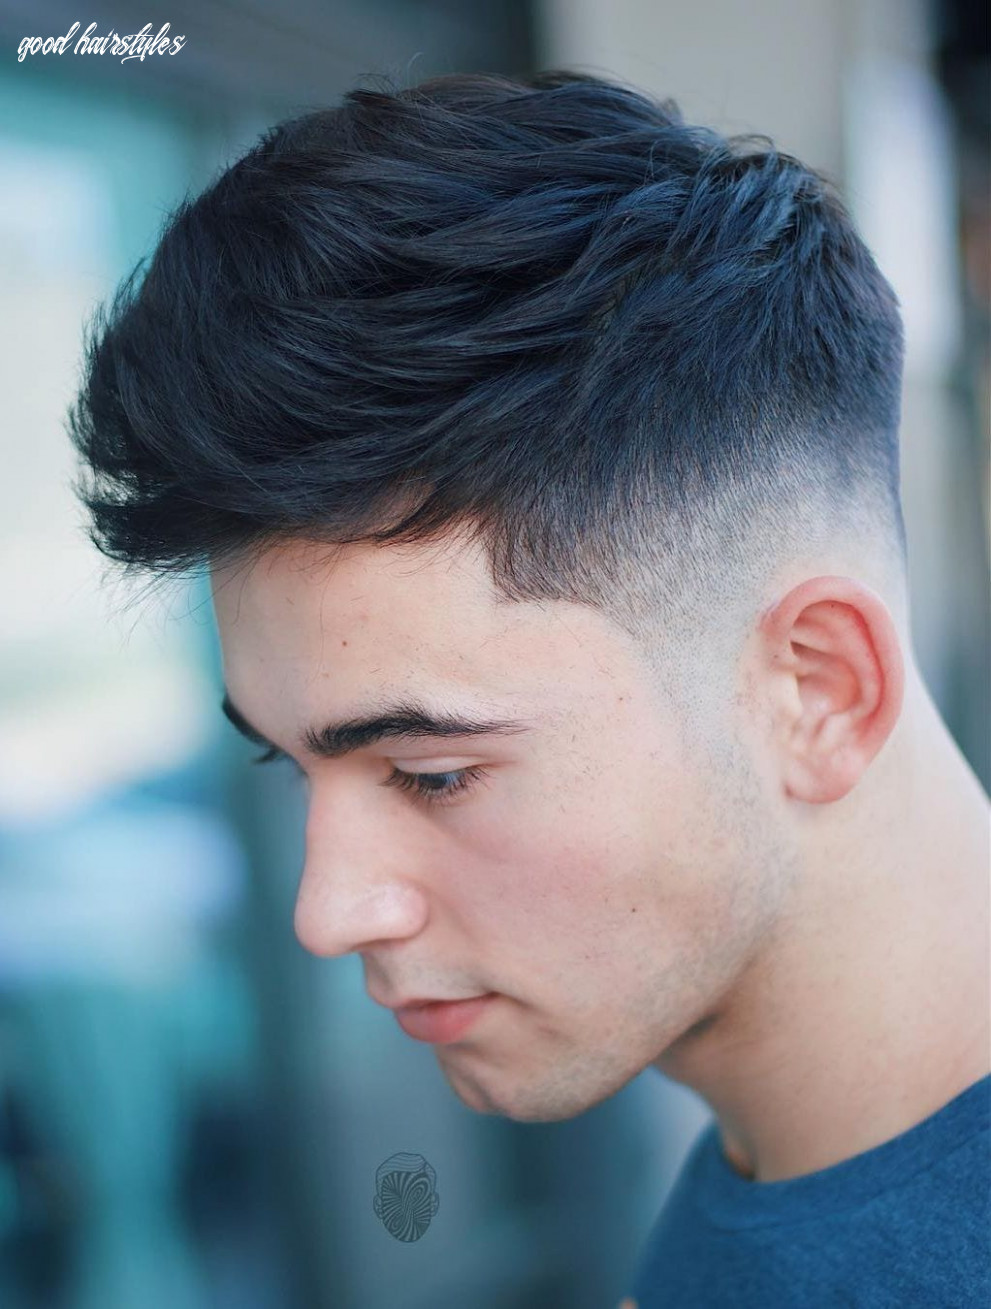 8 Best Hairstyles for Teenage Boys - The Ultimate Guide 8